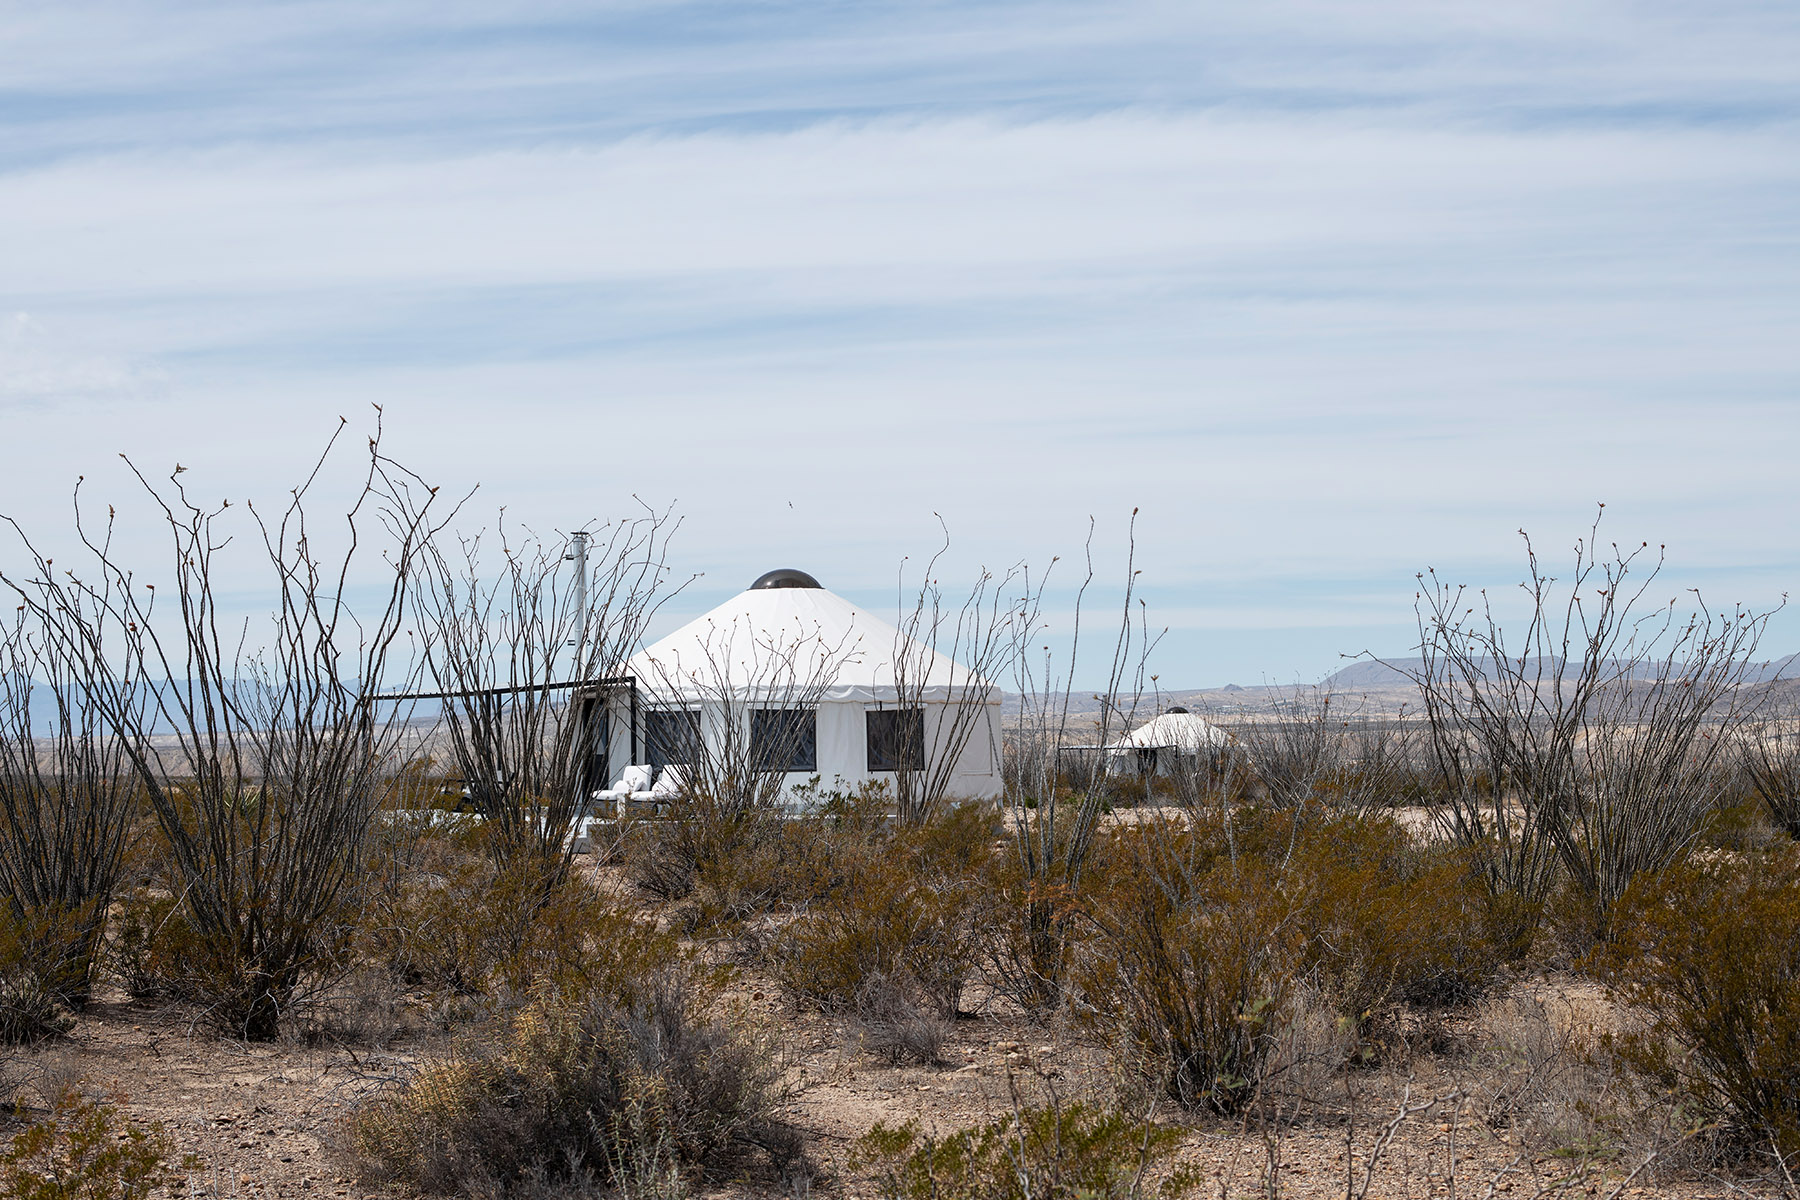 Amber Venz Box Big Bend Yurt